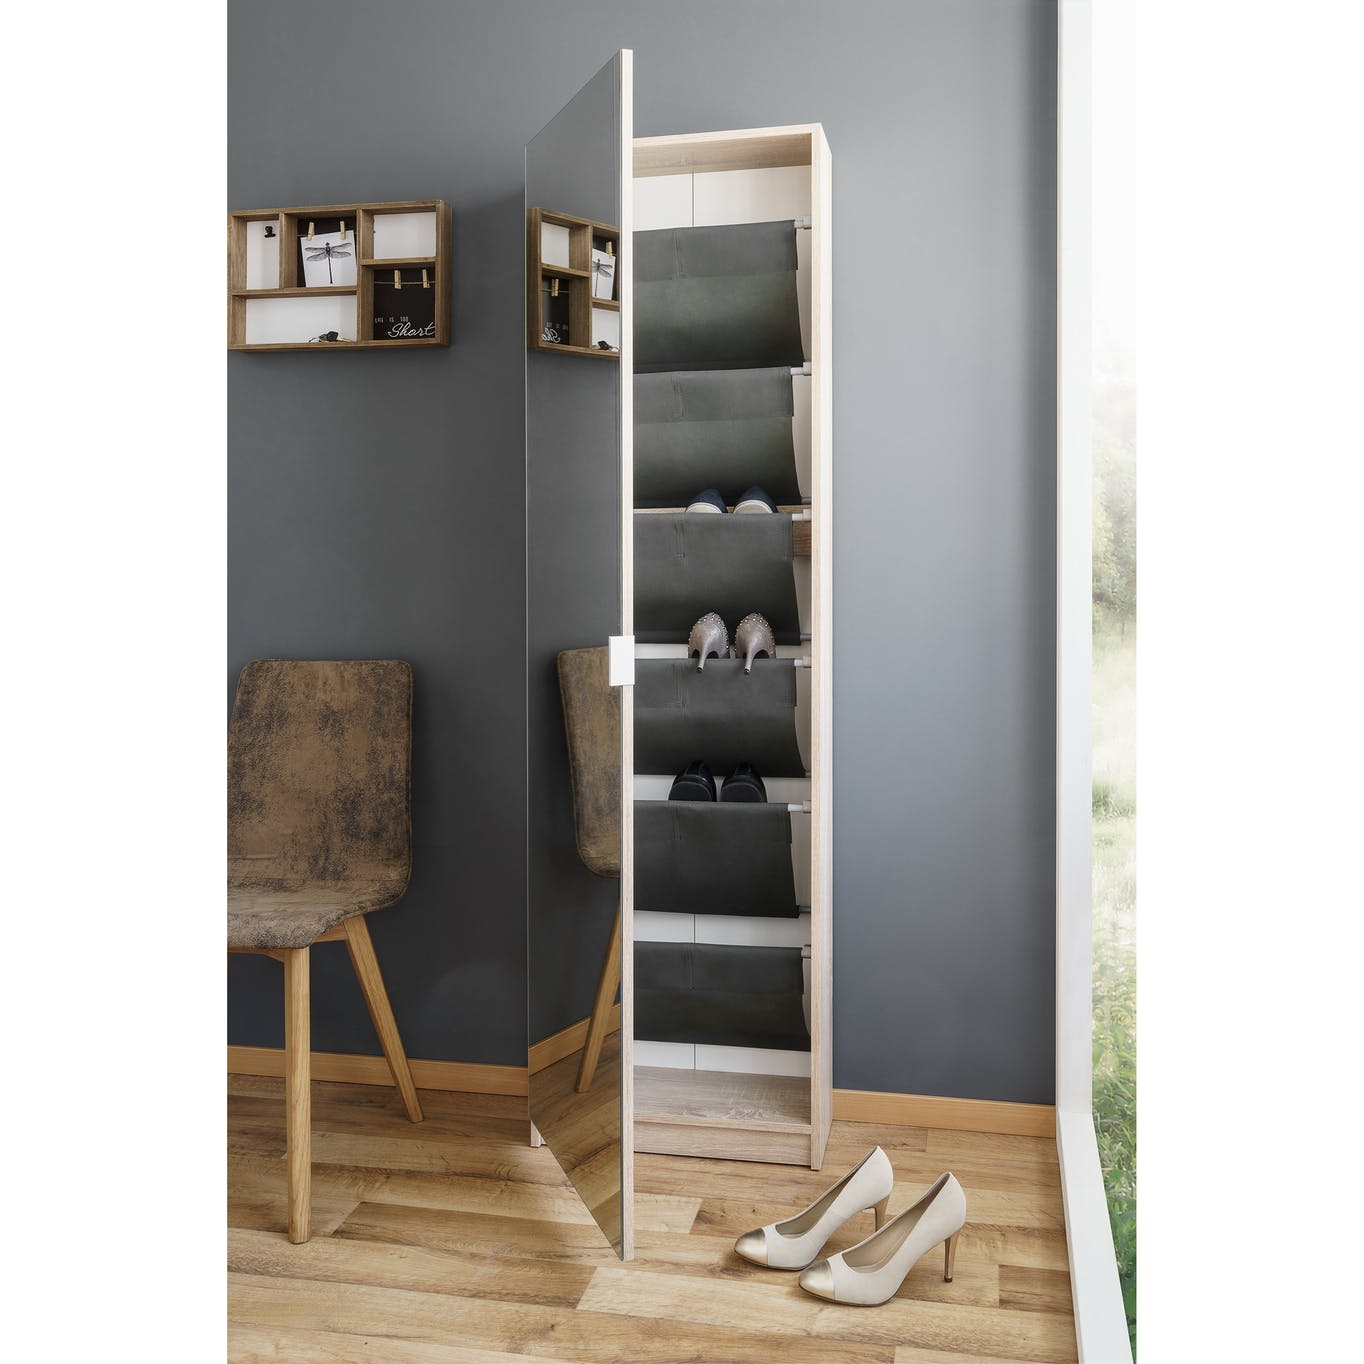 Tall shoe cabinet with mirror